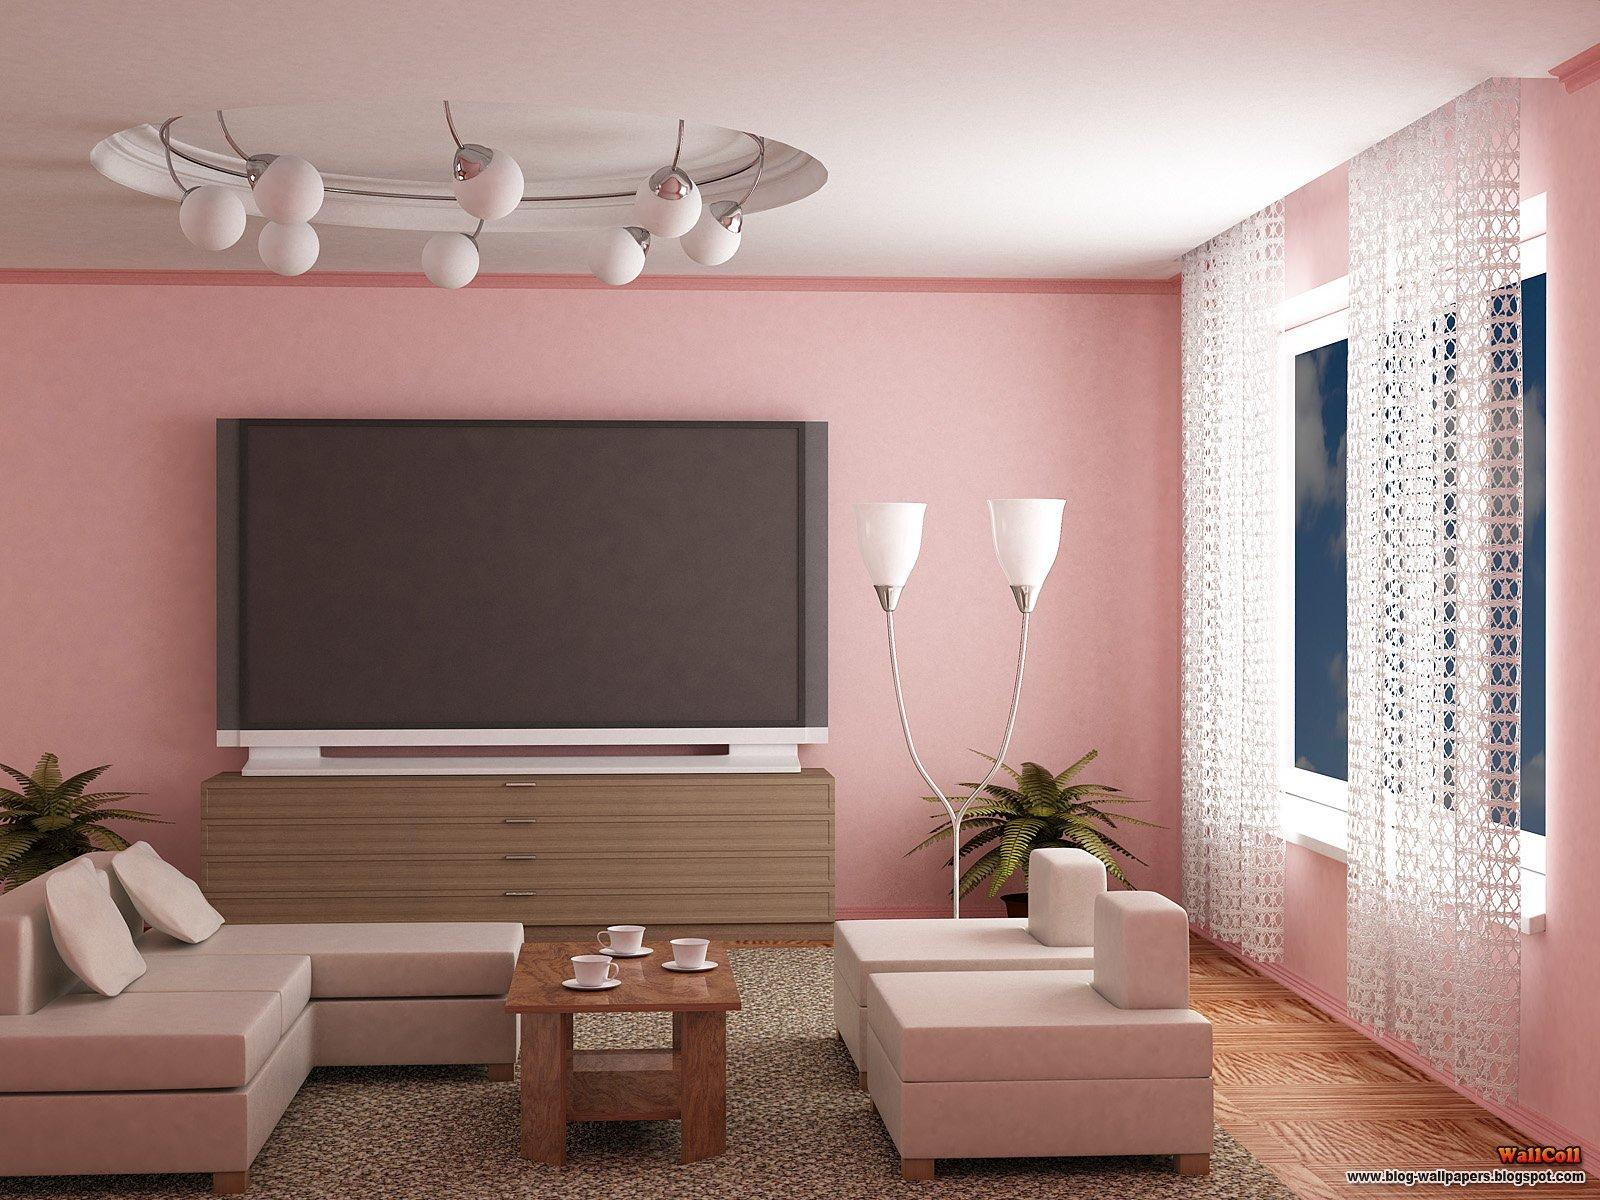 Living Room Colour Combination Asian Paints asian paints royale pink colour rooms - home design centre